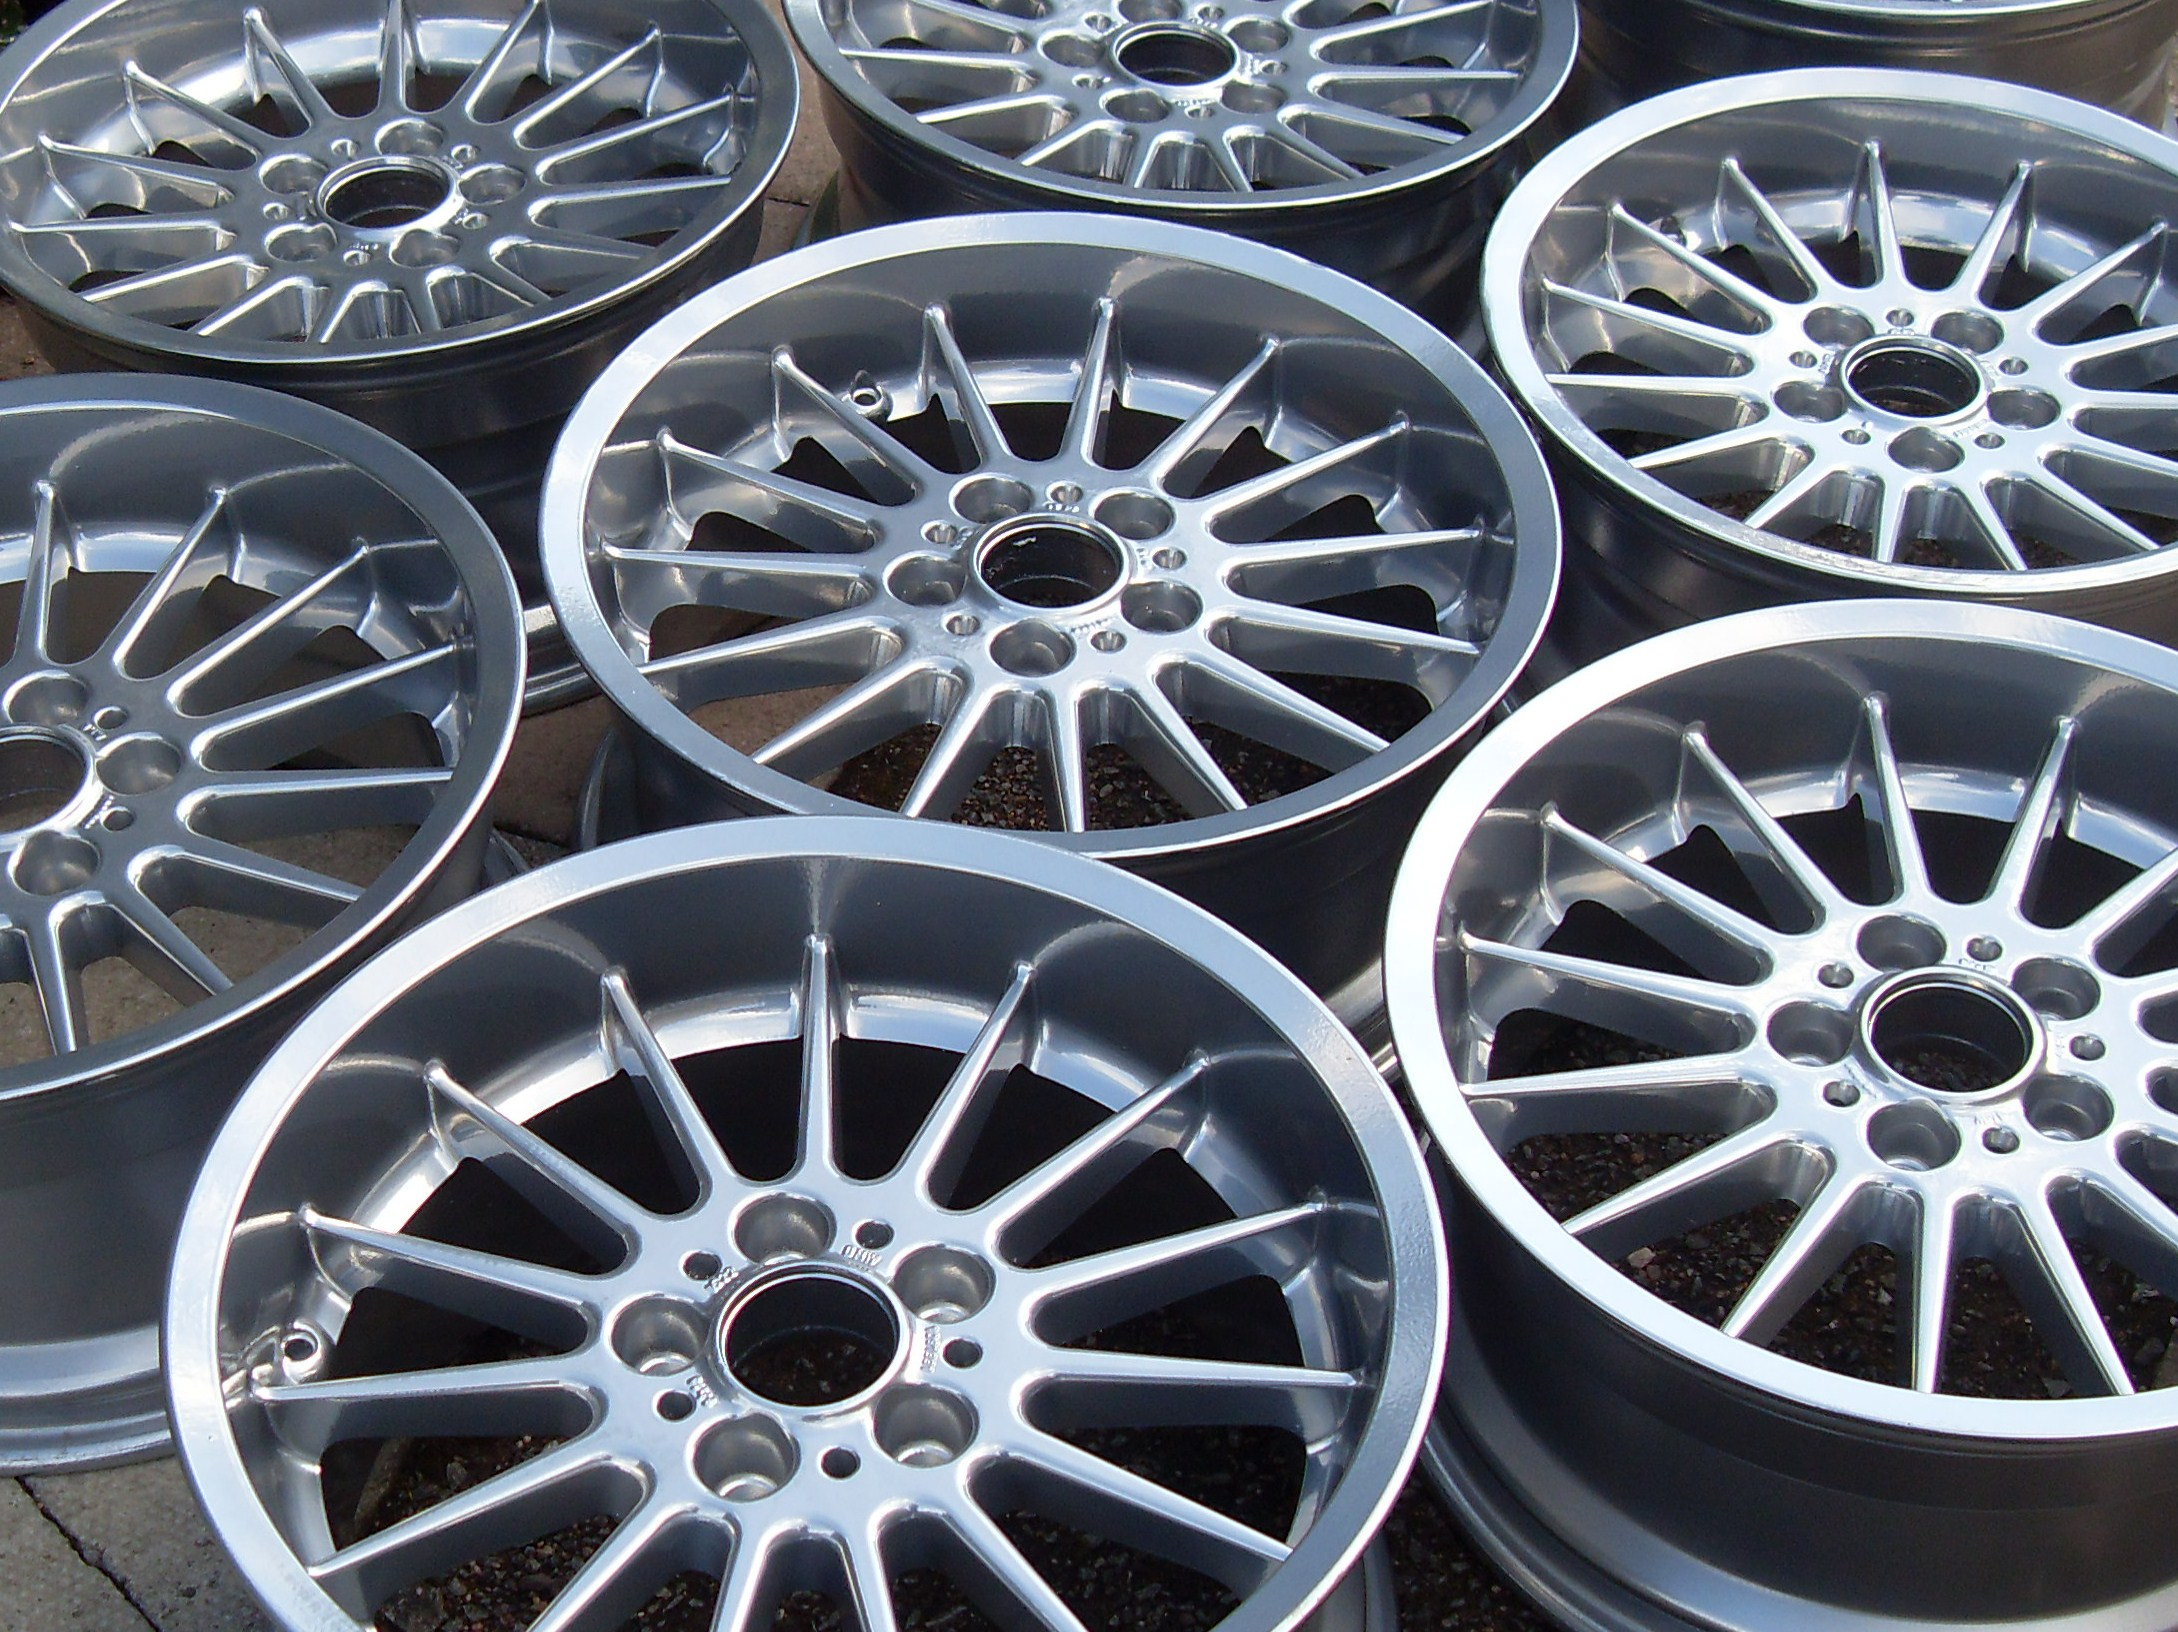 How much to powder coat rims uk